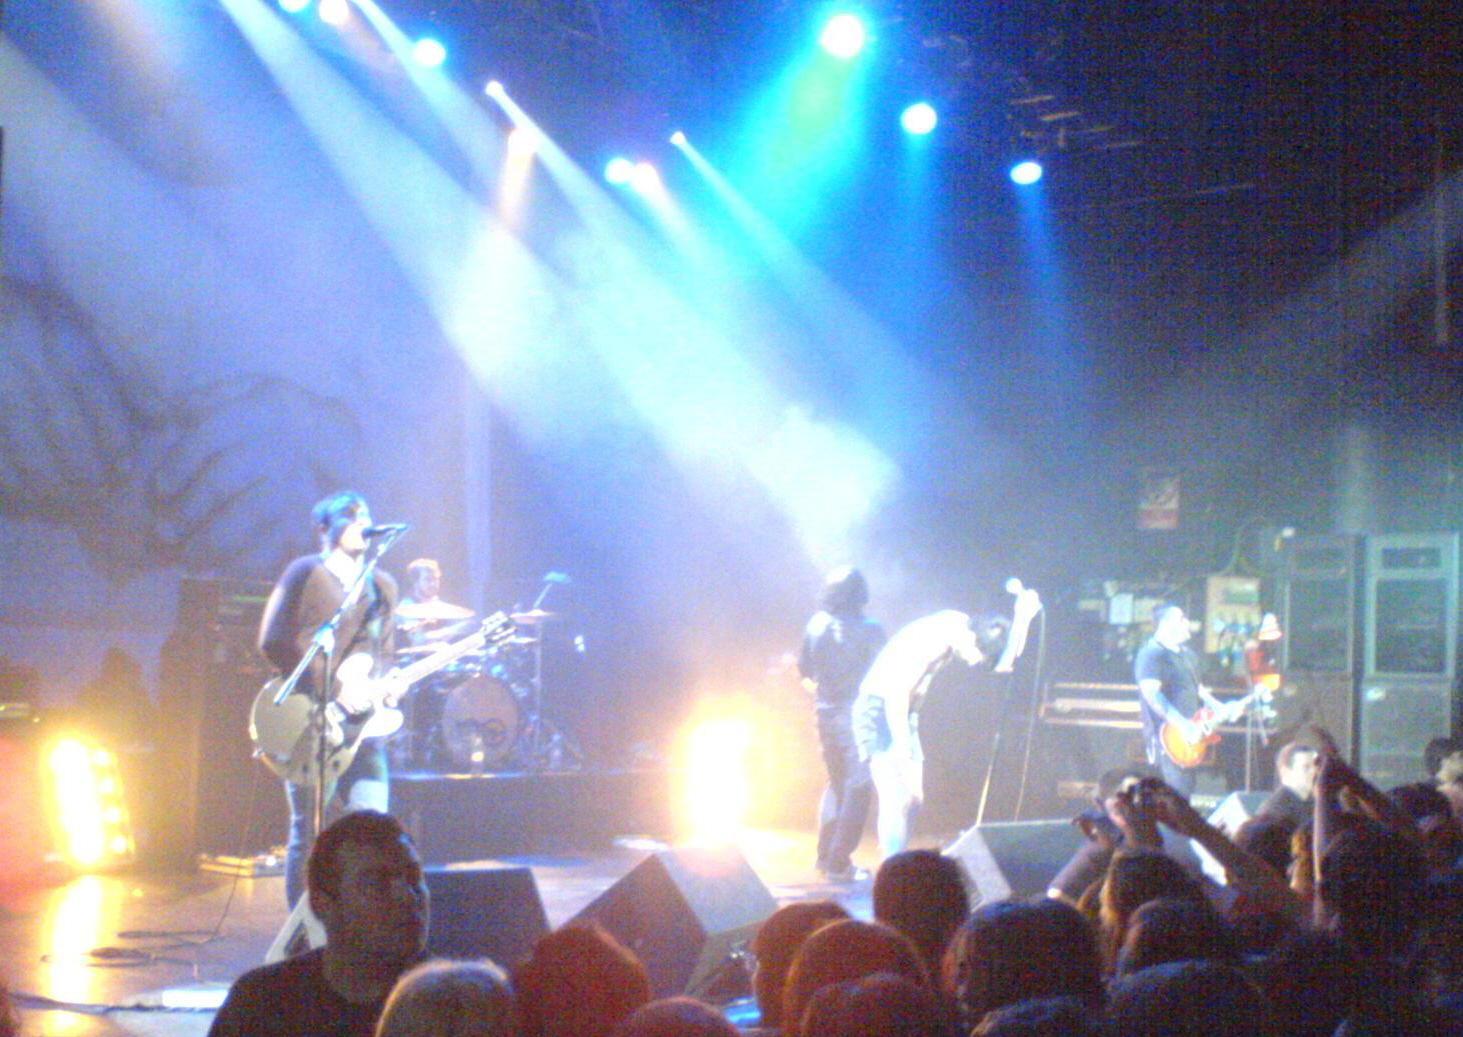 http://upload.wikimedia.org/wikipedia/commons/6/69/Alexisonfire_live